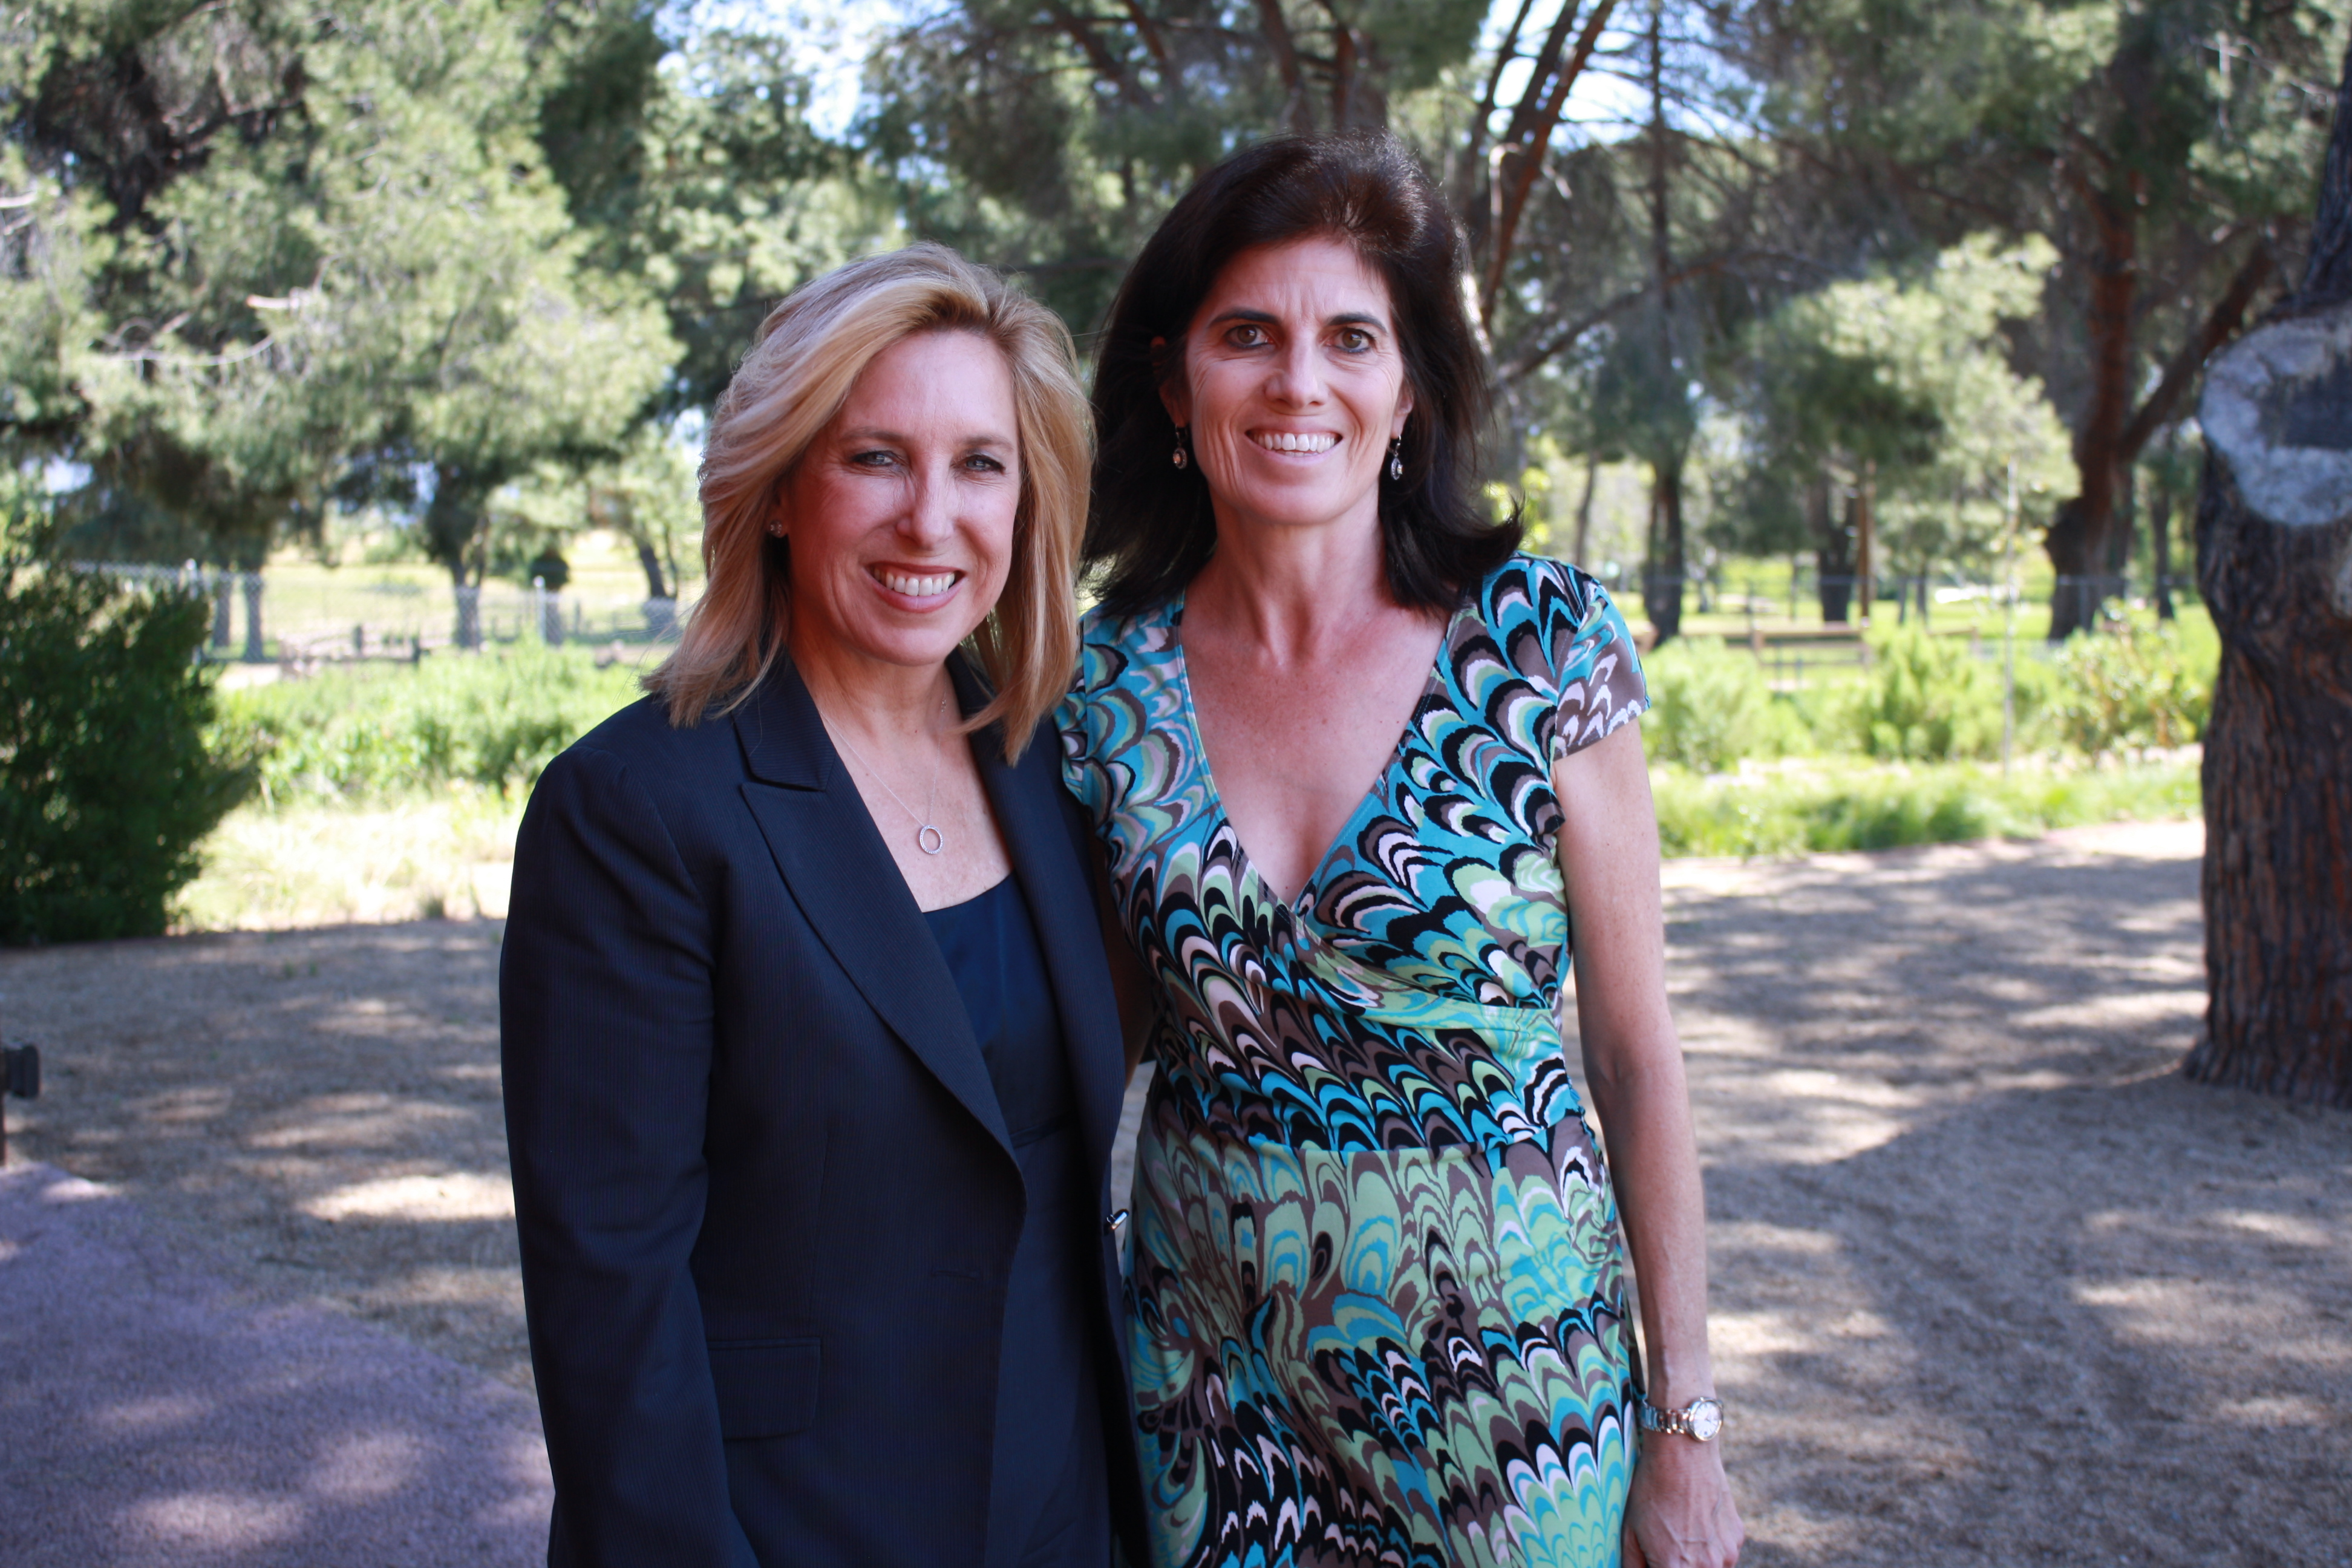 Wendy Greuel poses with Natalie Fousekis outside